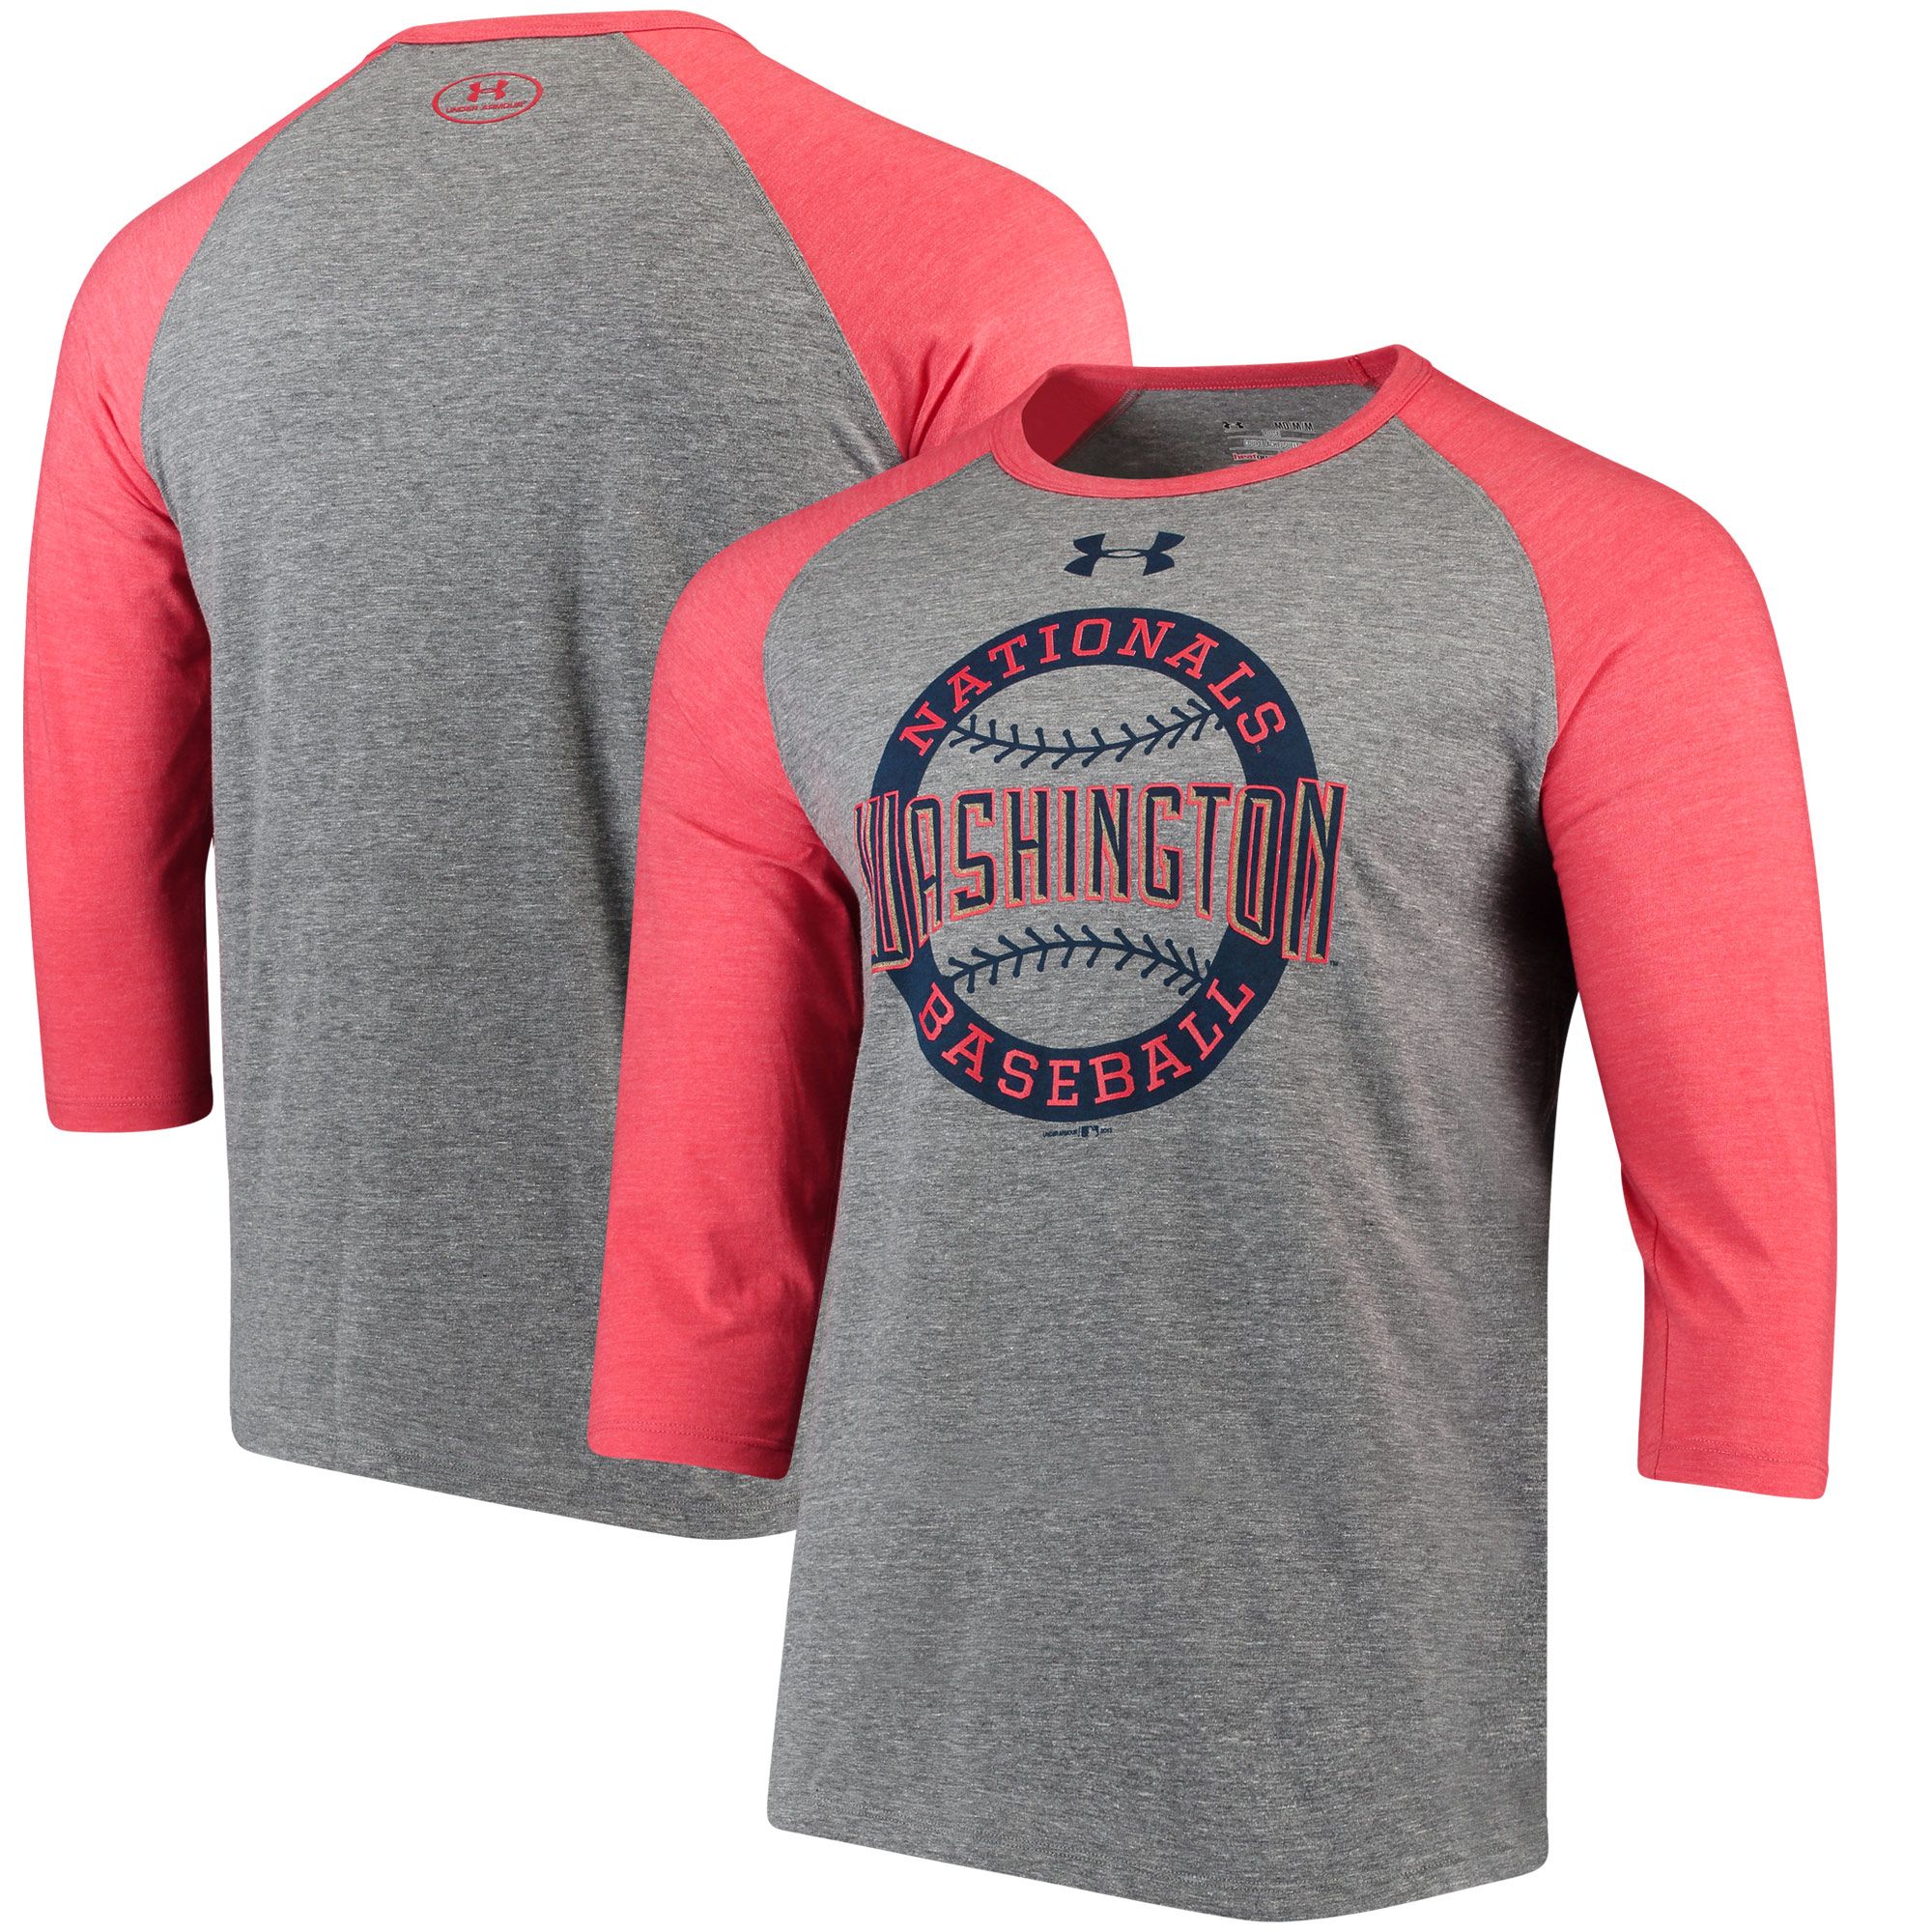 Washington Nationals Under Armour Baseball 3/4-Sleeve Tri-Blend T-Shirt - Gray/Red